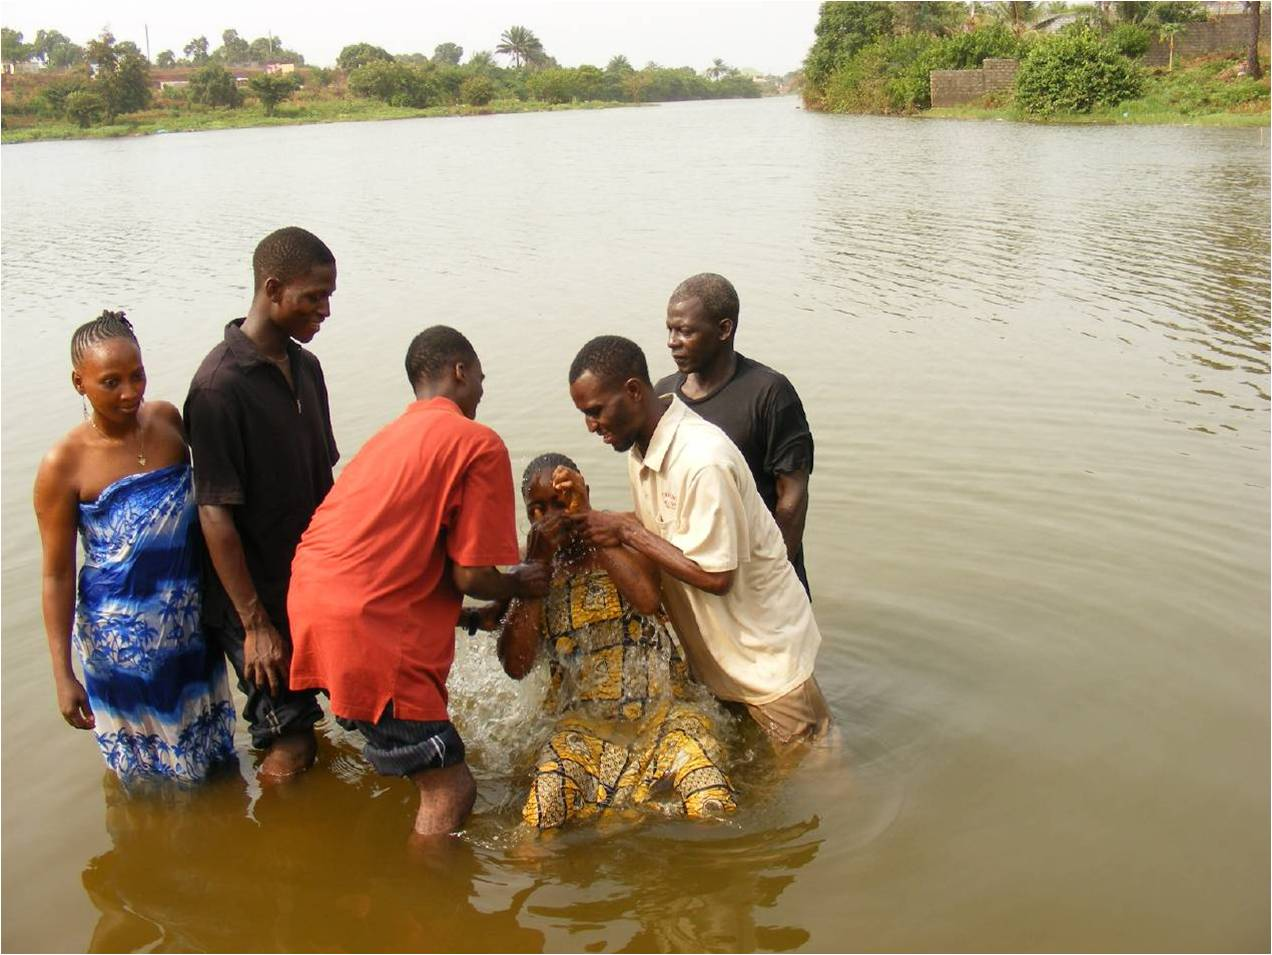 Baptizing in Guinea